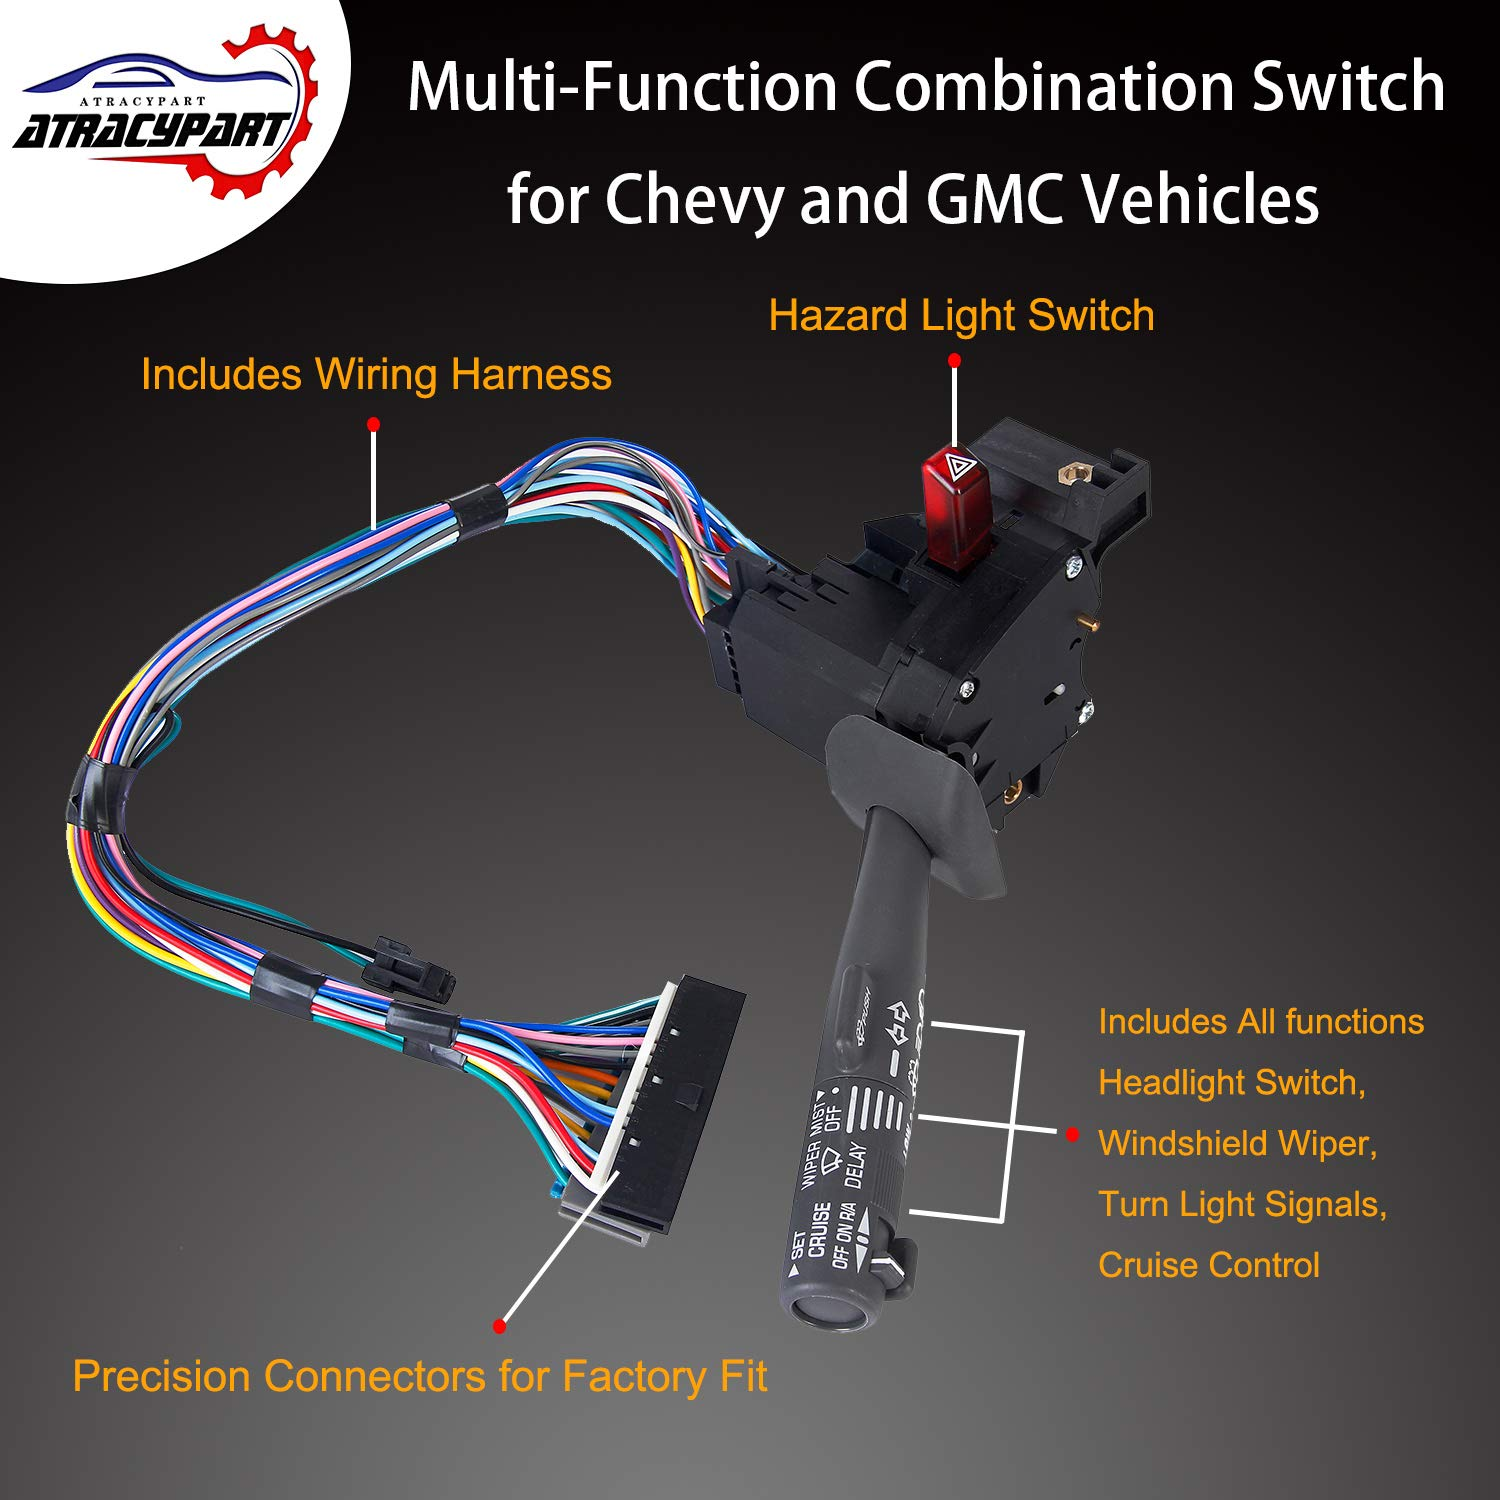 Harness For 1996 Gmc Jimmy As Well As 1995 Chevy Tahoe Wiring Diagram